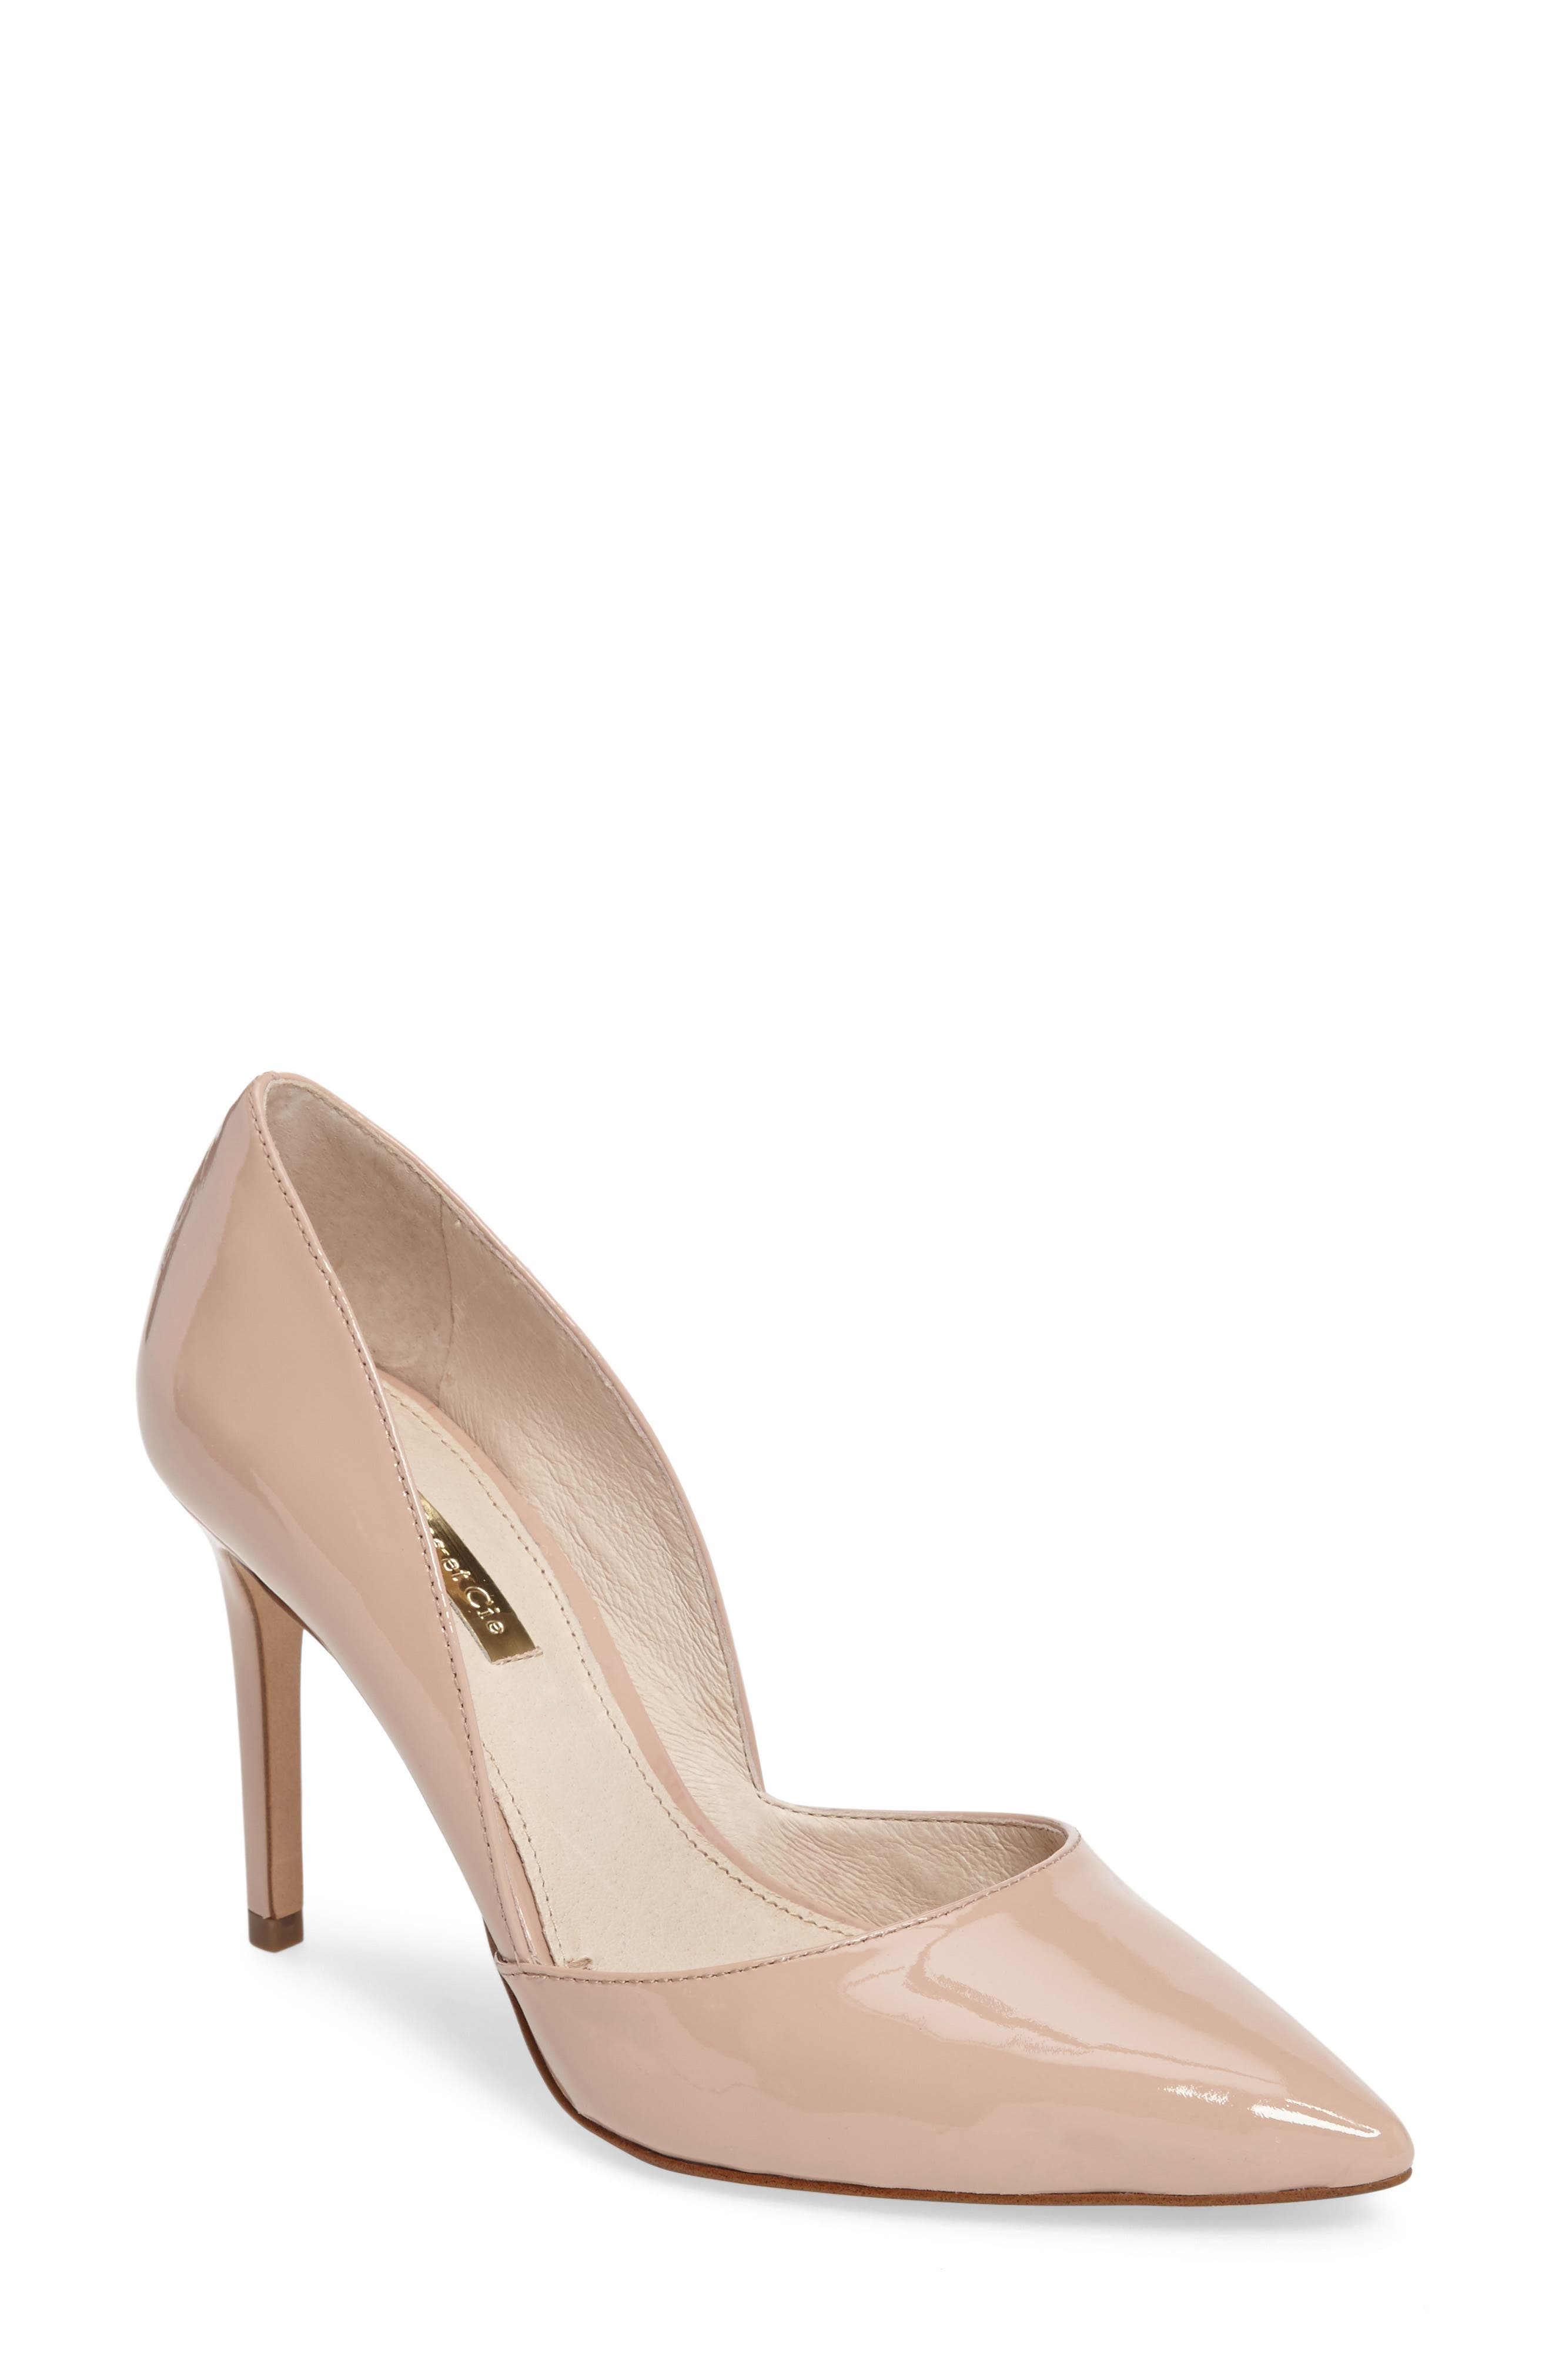 Main Image - Louise et Cie 'Hermosah' Pump (Women)